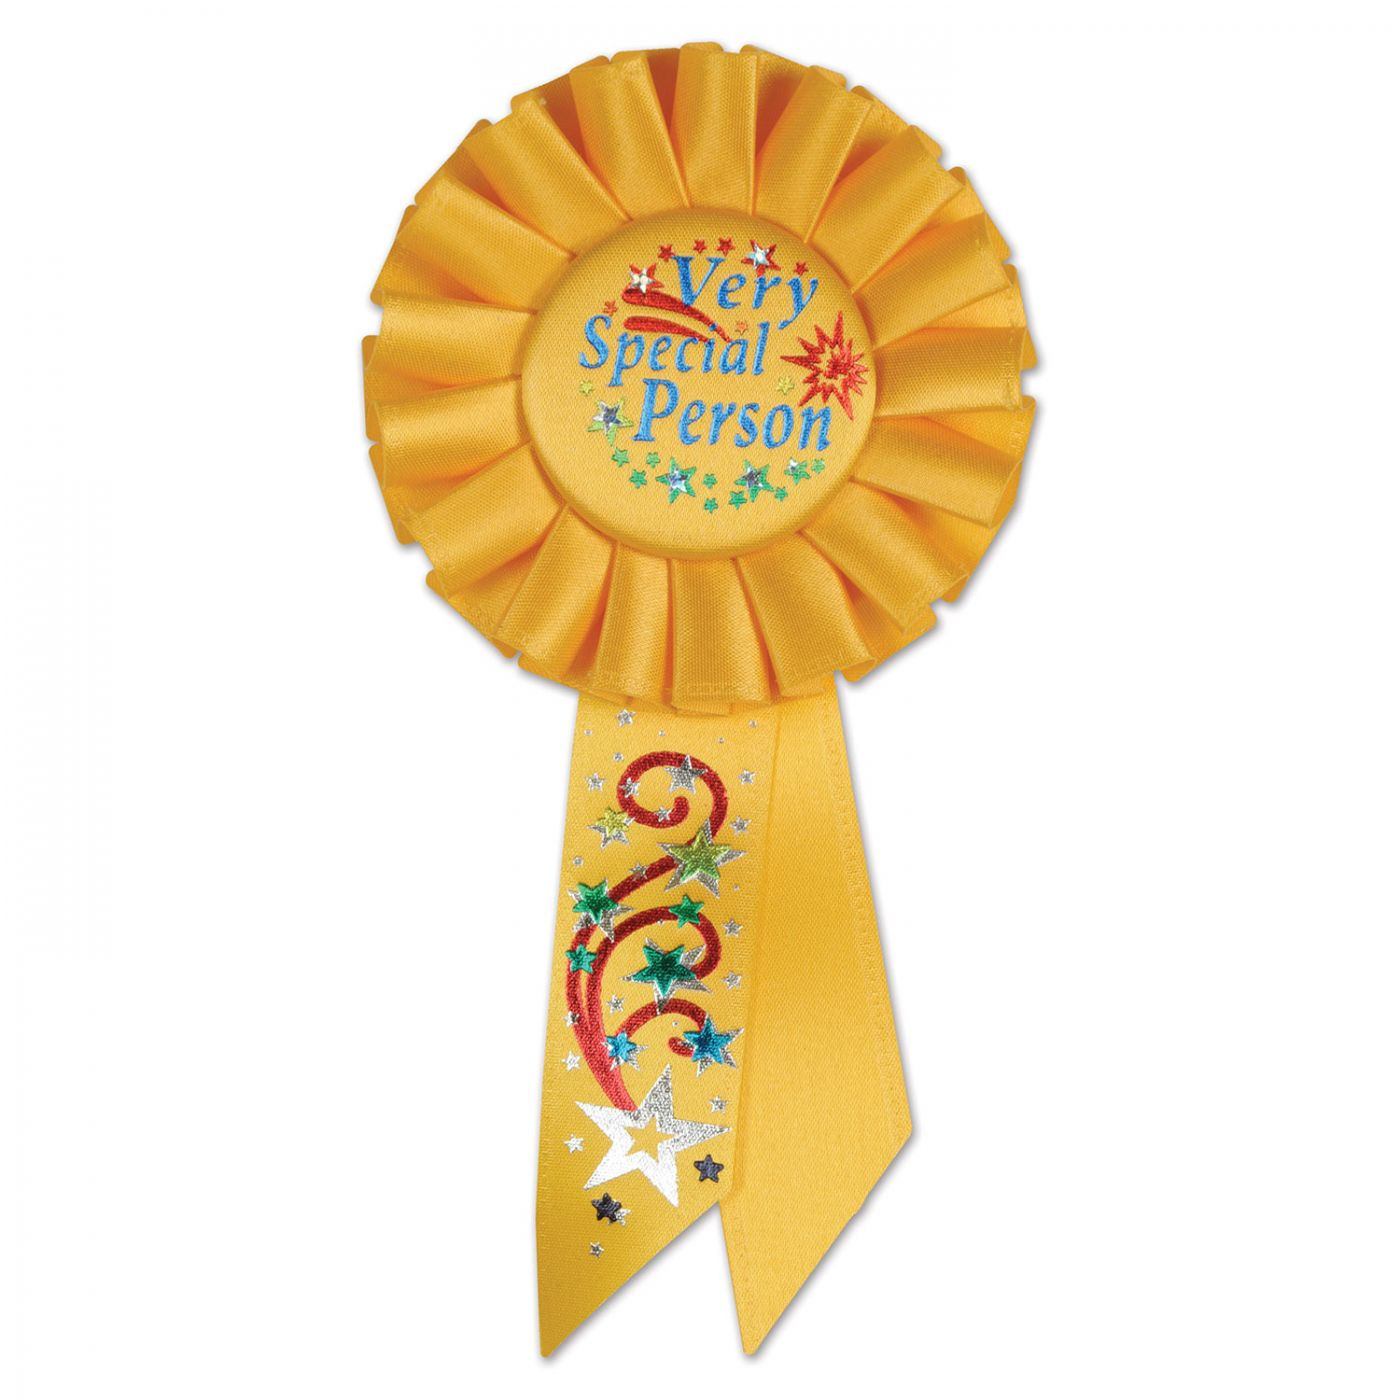 Very Special Person Rosette (6) image